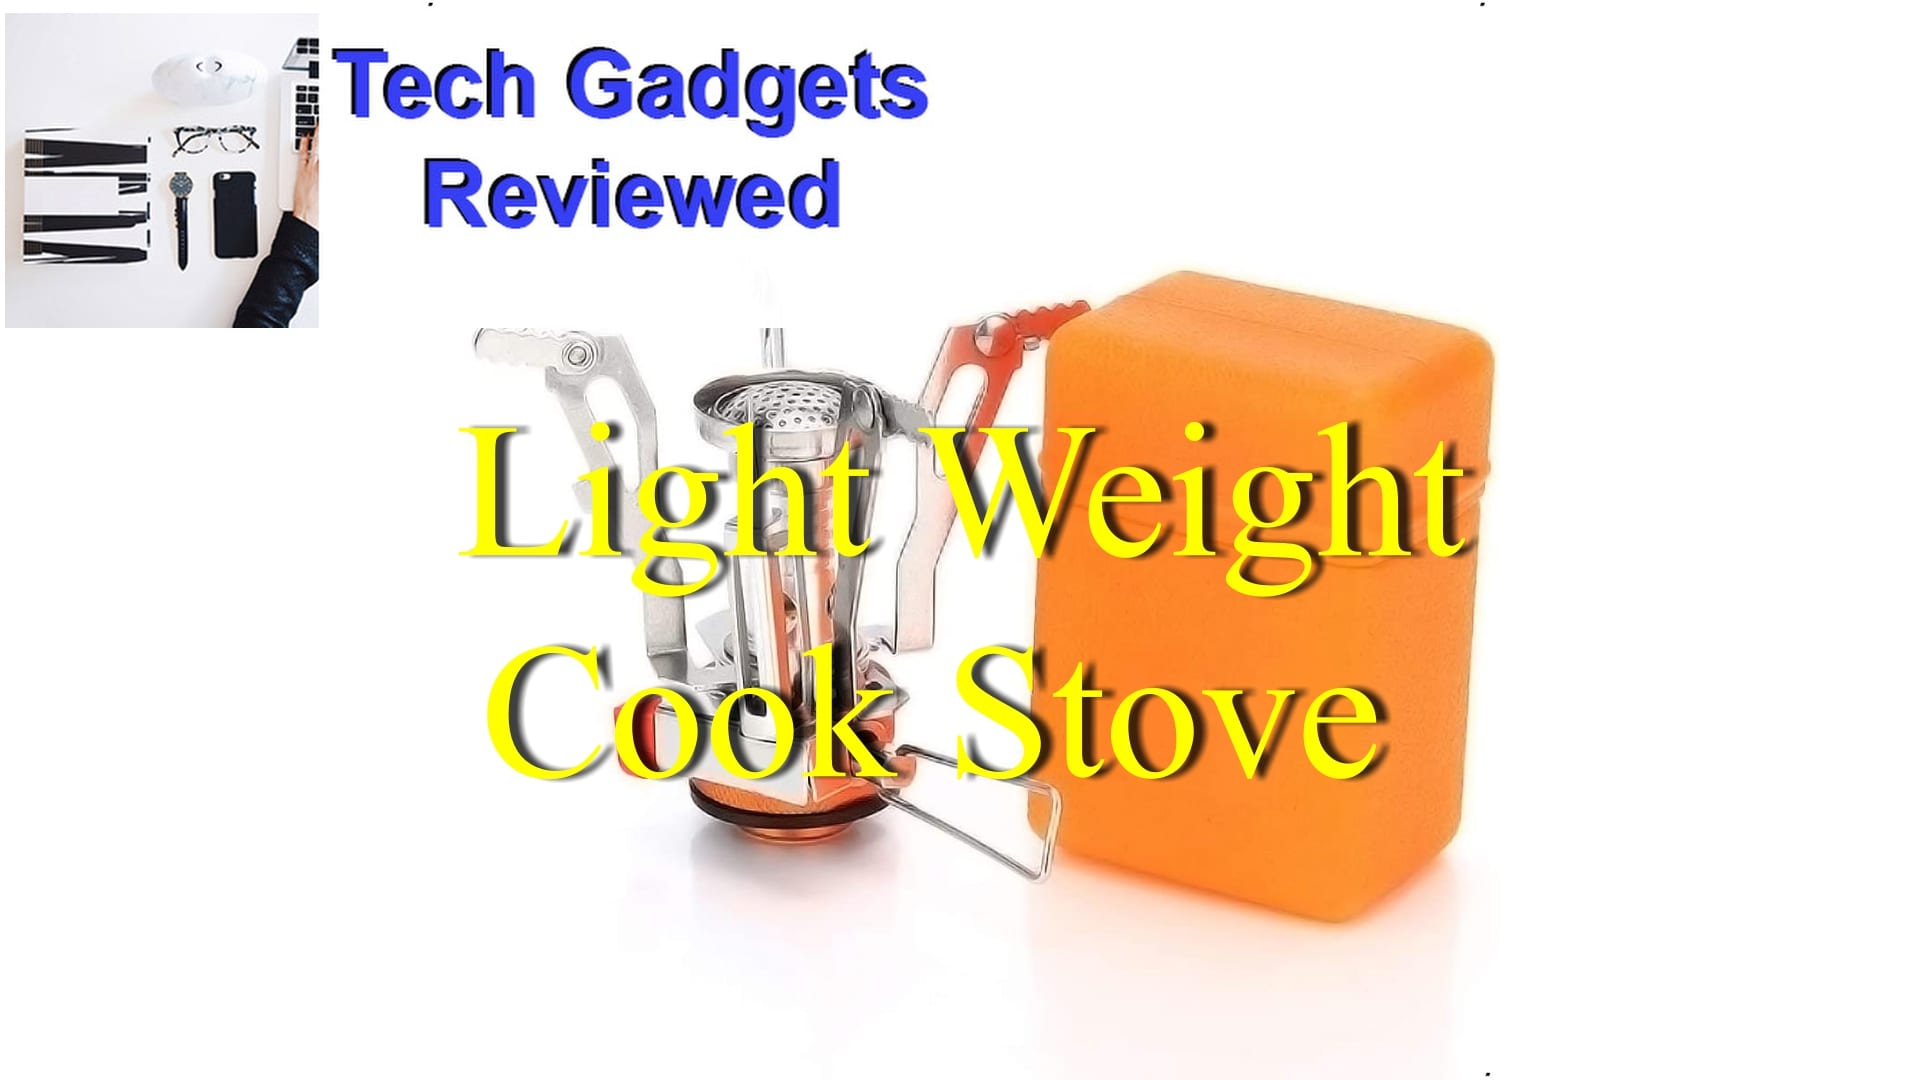 Light Weight Cook Stove